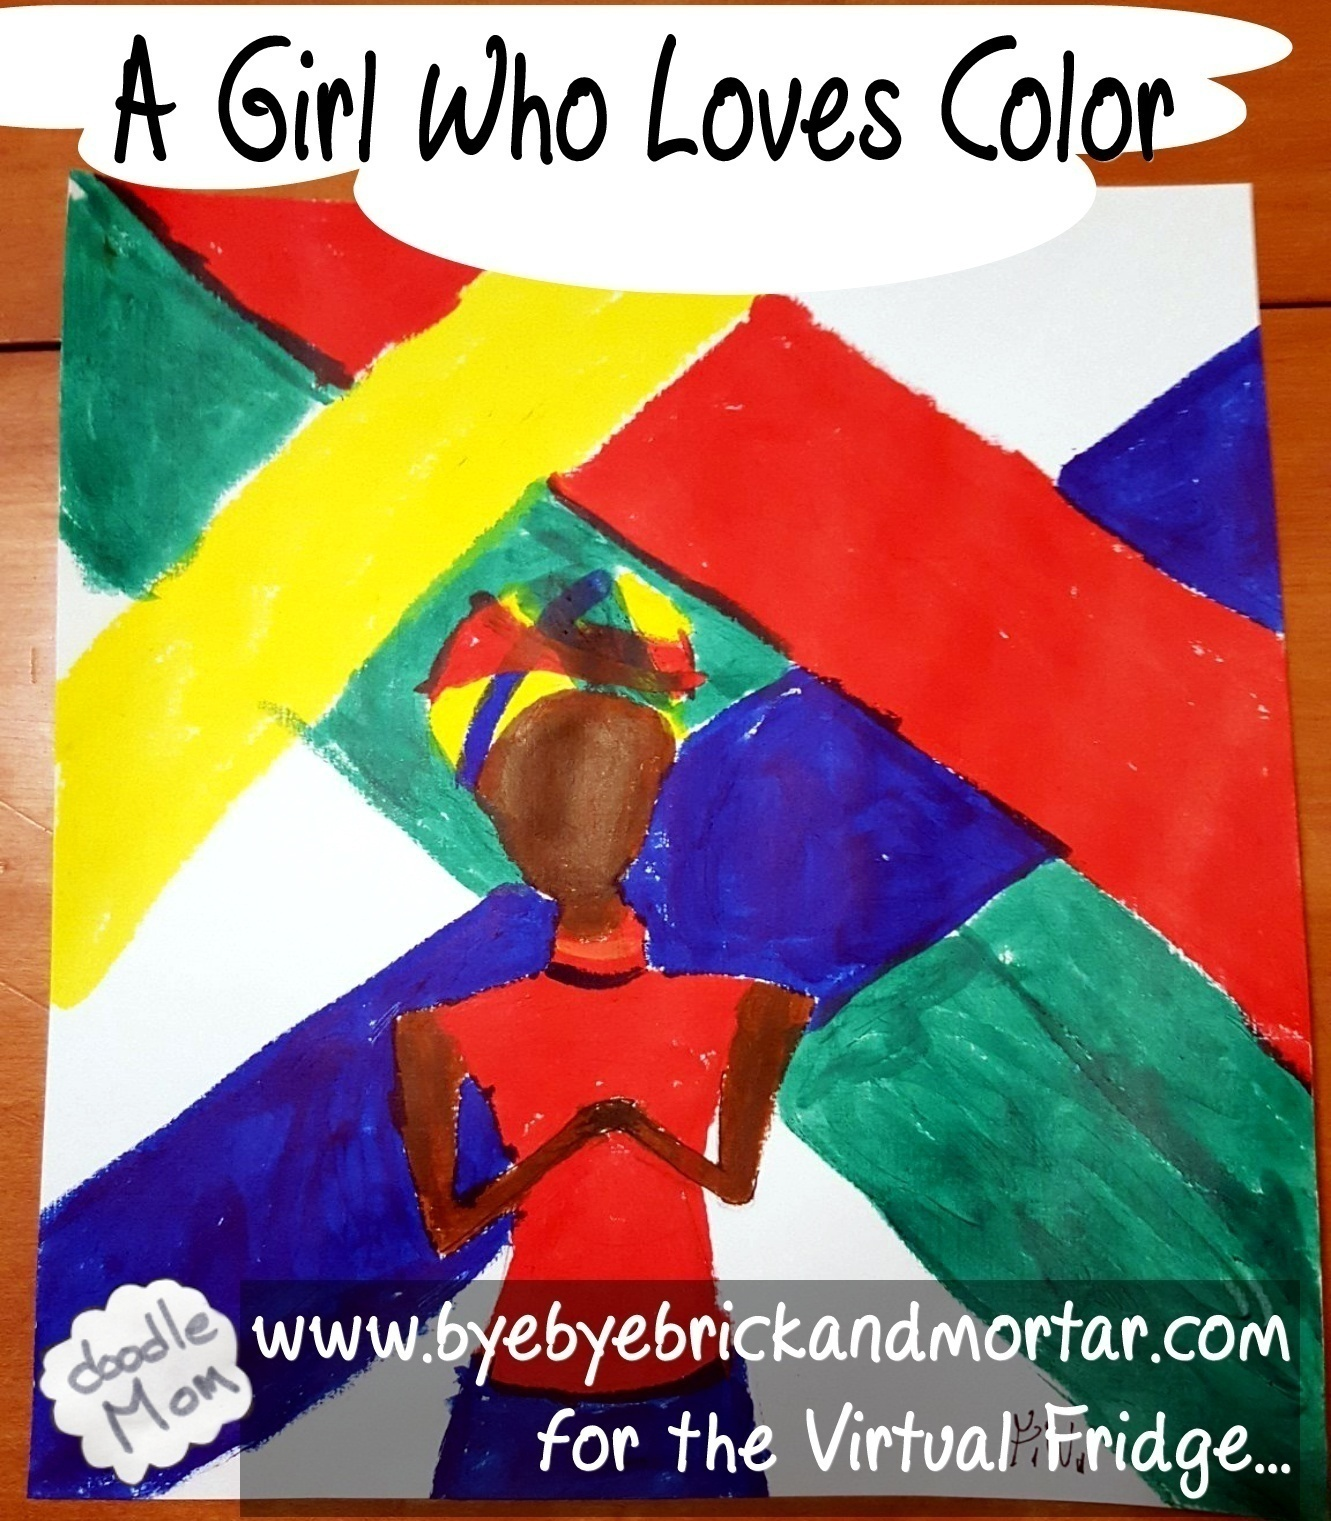 A Girl Who Loves Color